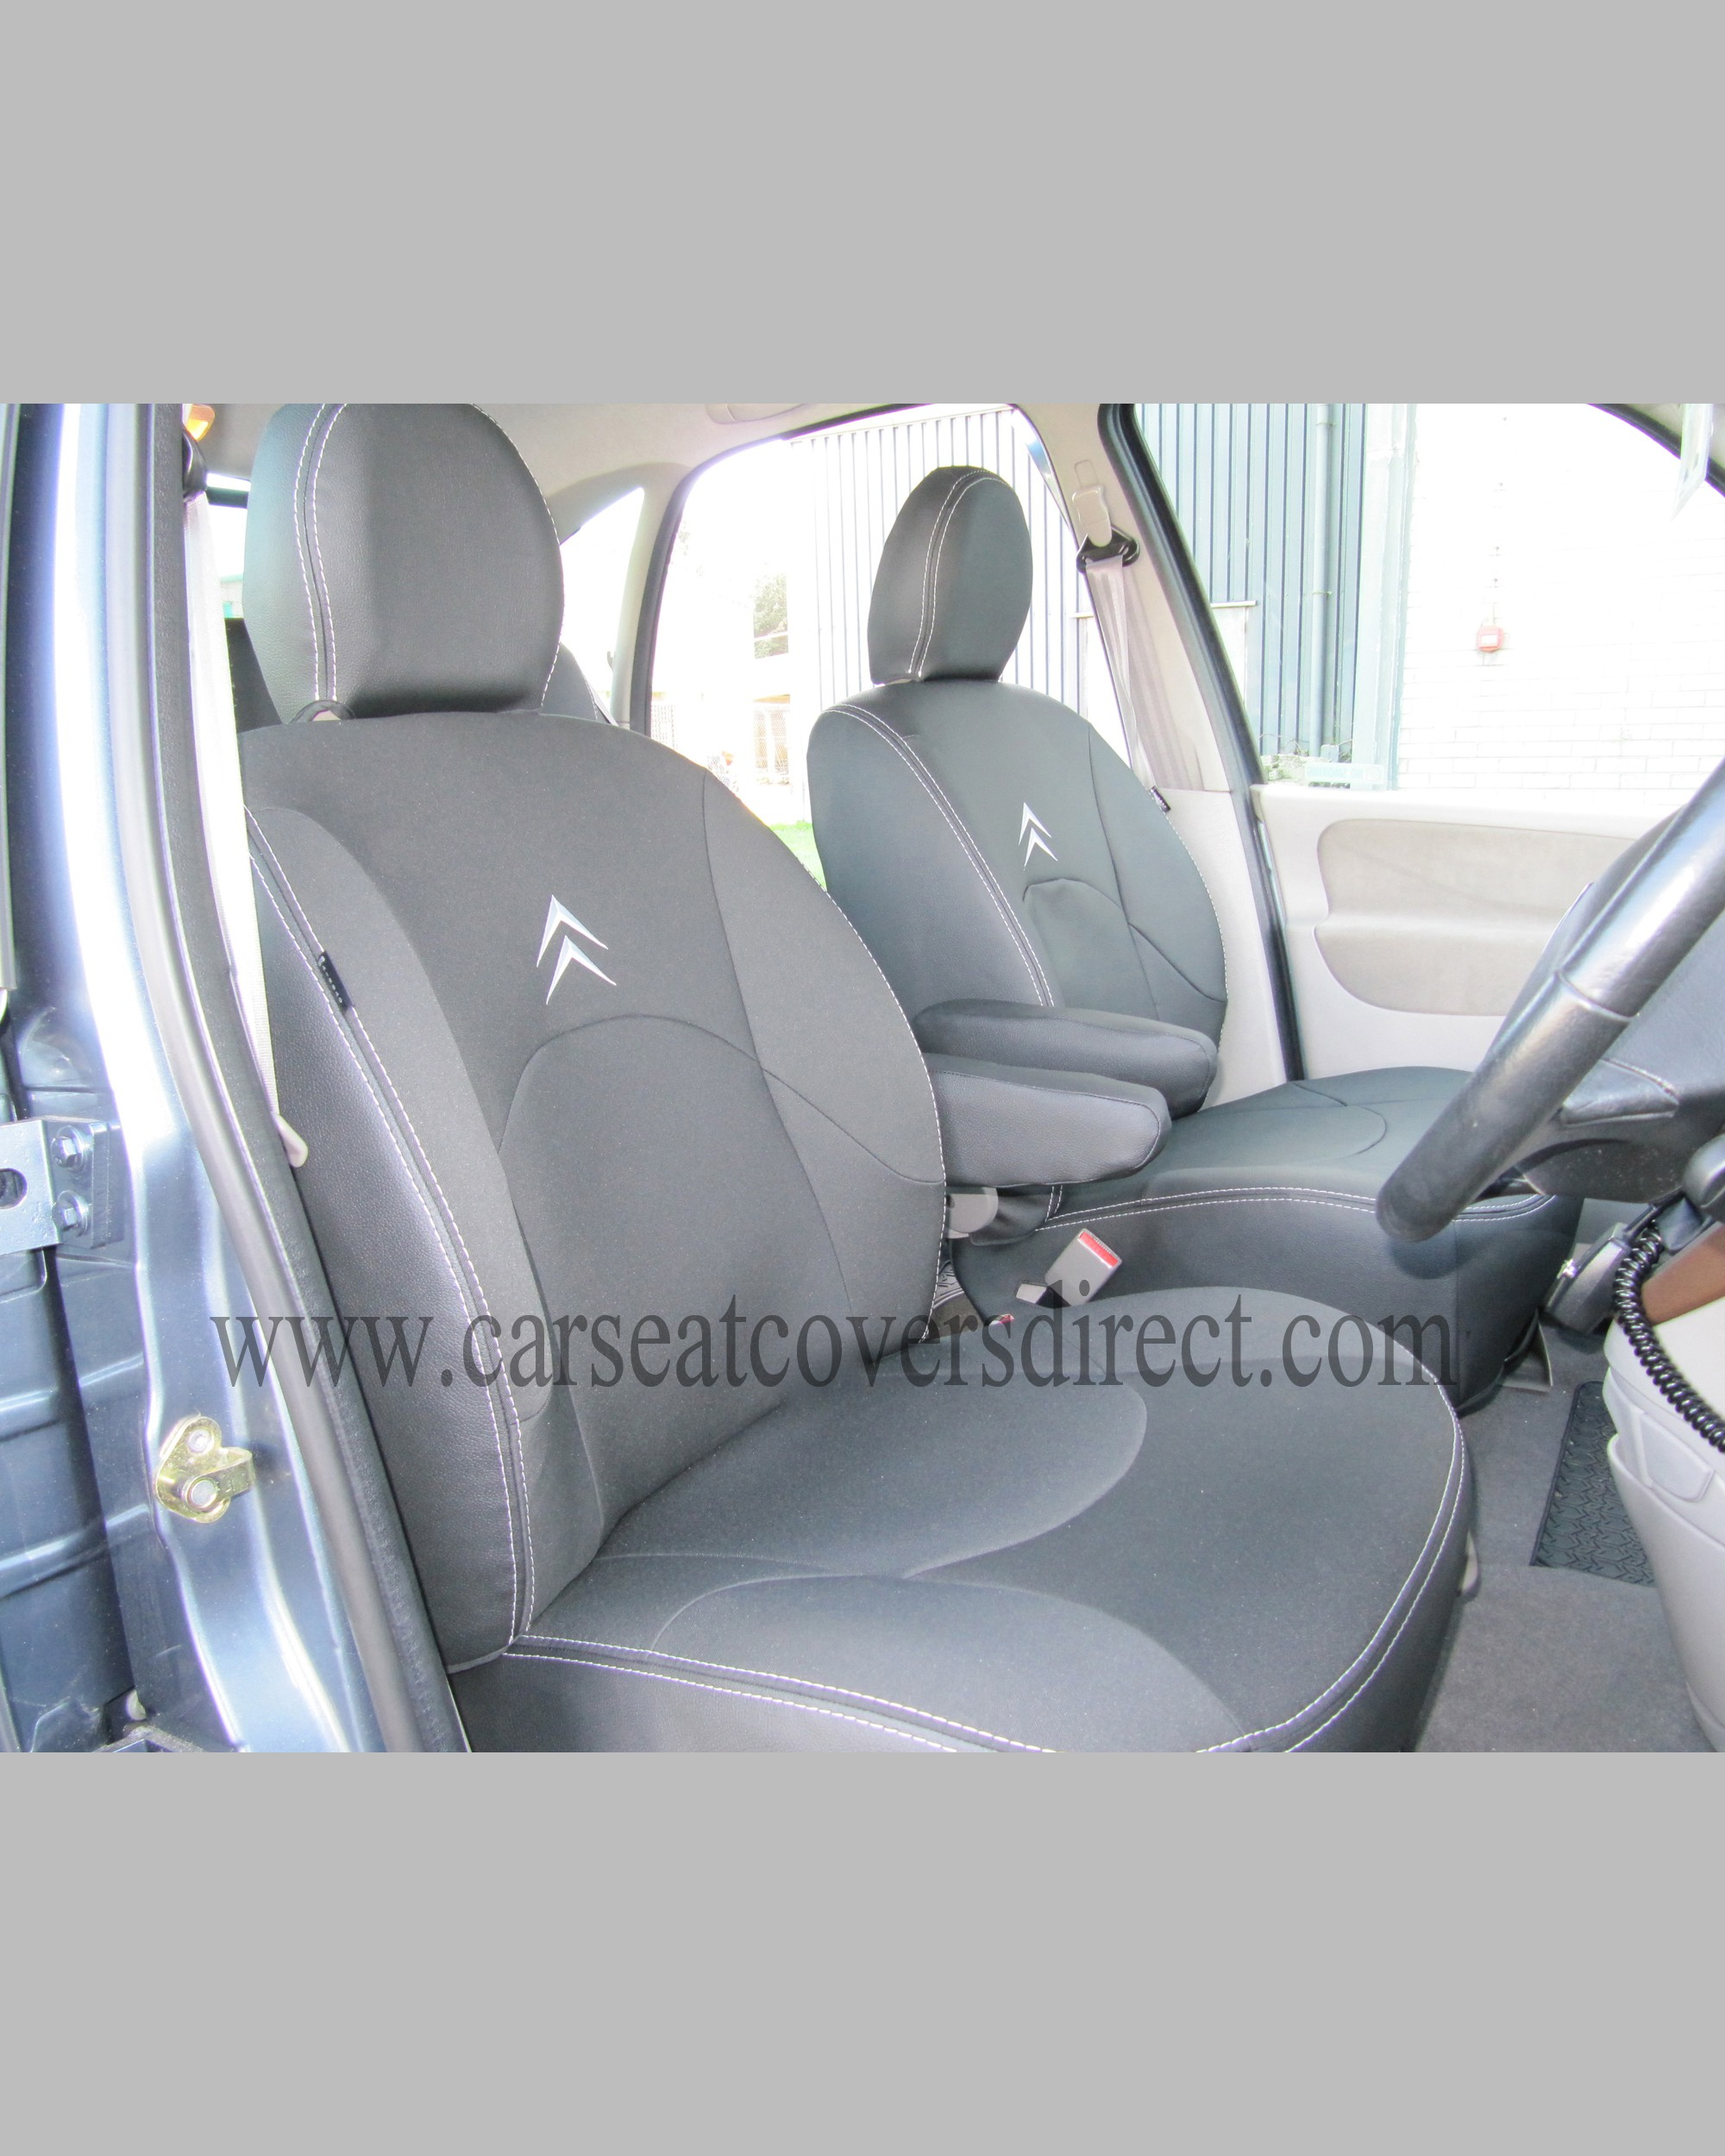 Search Results For Citroen Car Seat Covers Direct